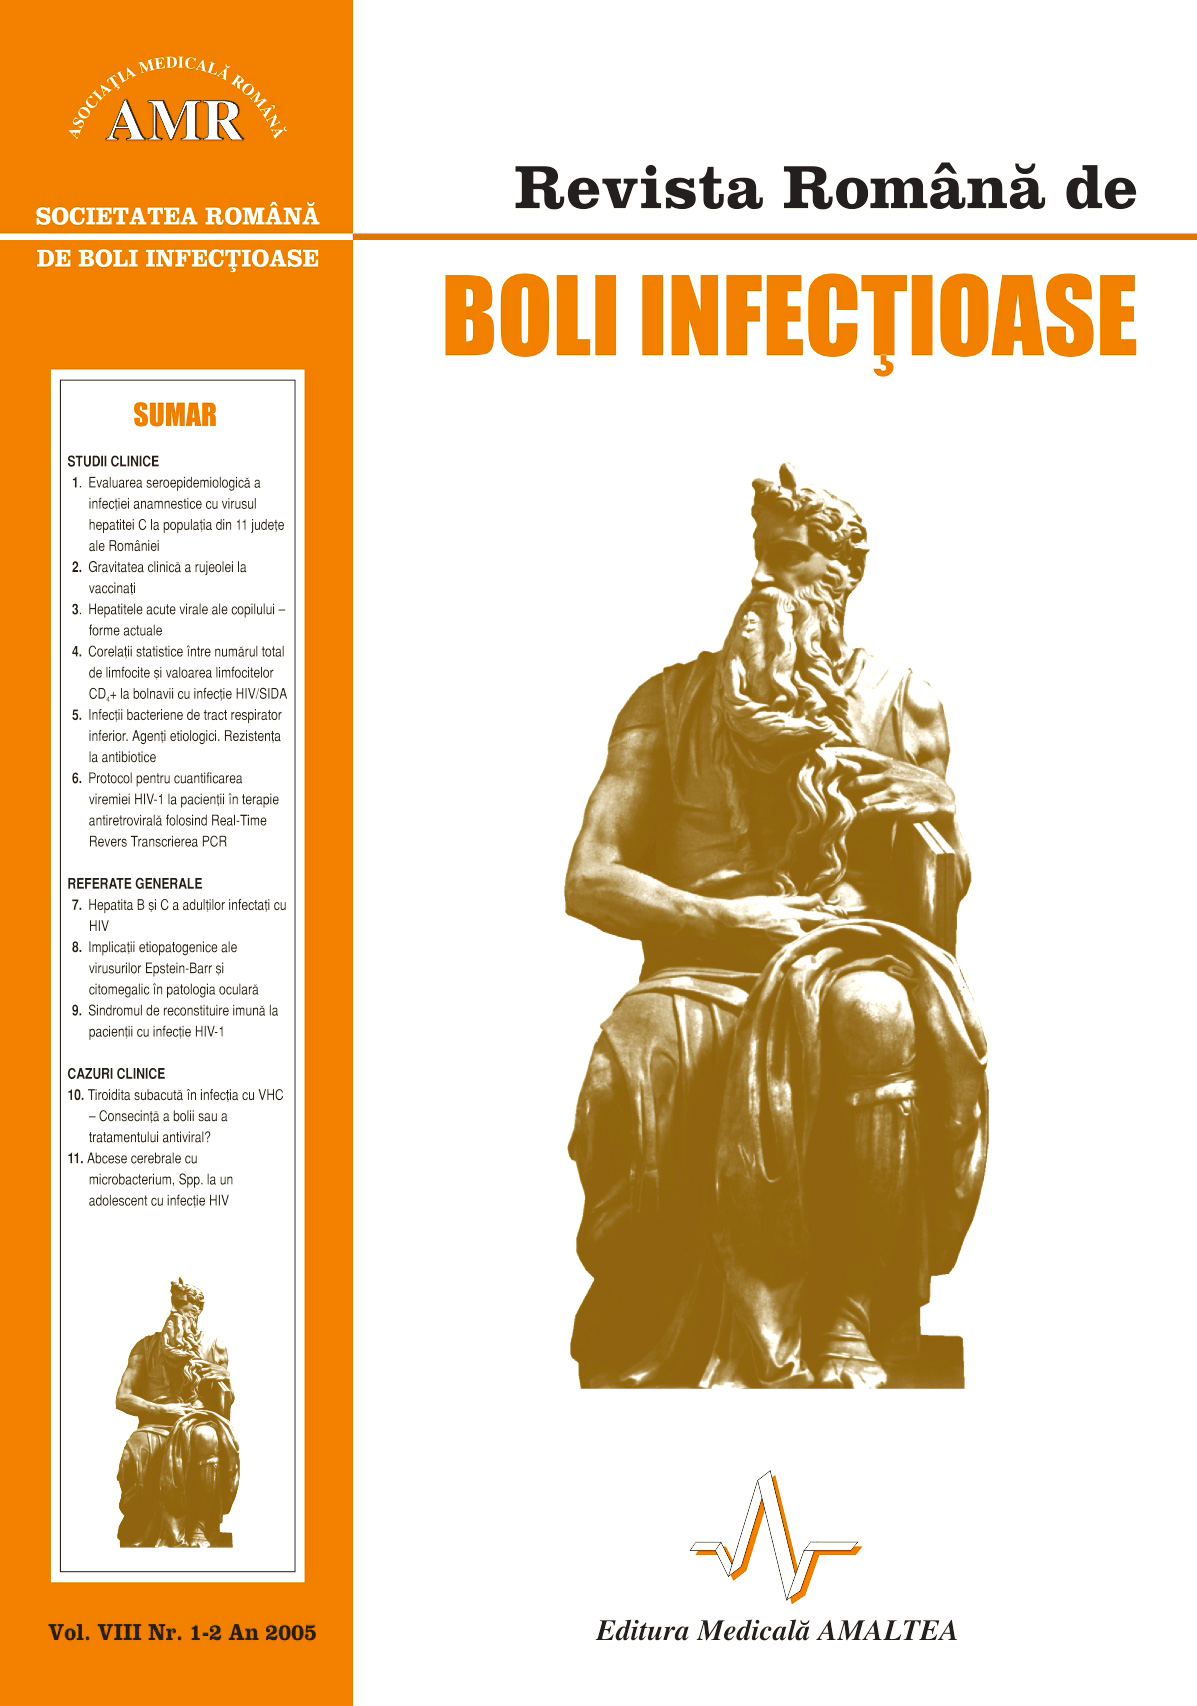 Revista Romana de Boli Infectioase | Vol. VIII, No. 1-2, 2005